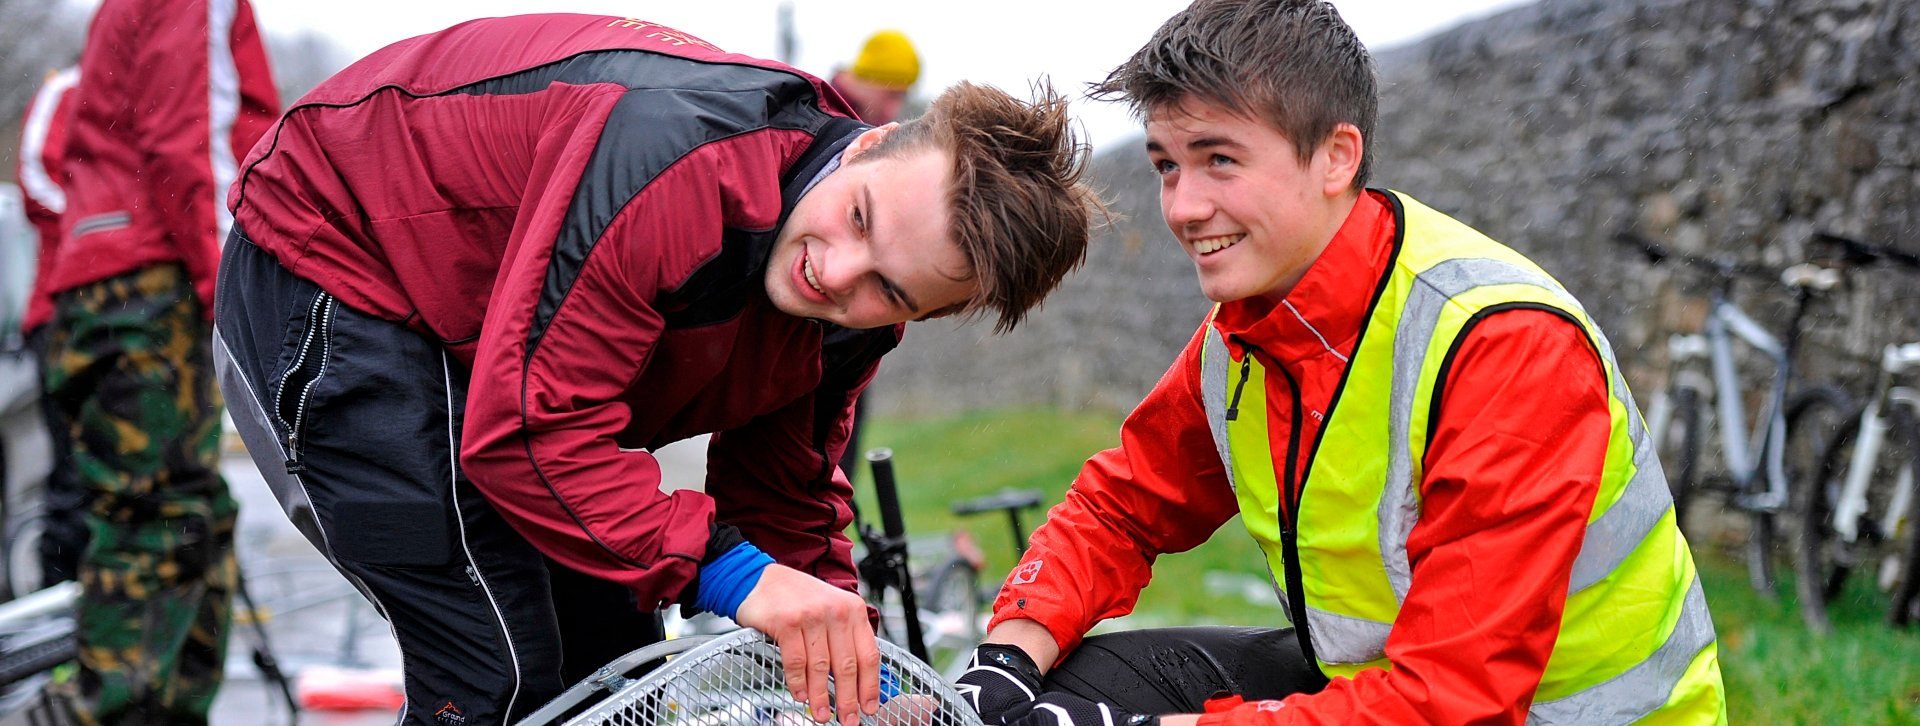 The Duke of Edinburgh's Award Gold Expedition in the Brecon Beacons, Wales with students and staff  from Shiplake College, Henley-On-Thames. Three groups over two days taking part in cycling, canoeing and kayaking expeditions, 28th-30th March 2015  Photography by Fergus Burnett  Accreditation required with all use - 'fergusburnett.com'